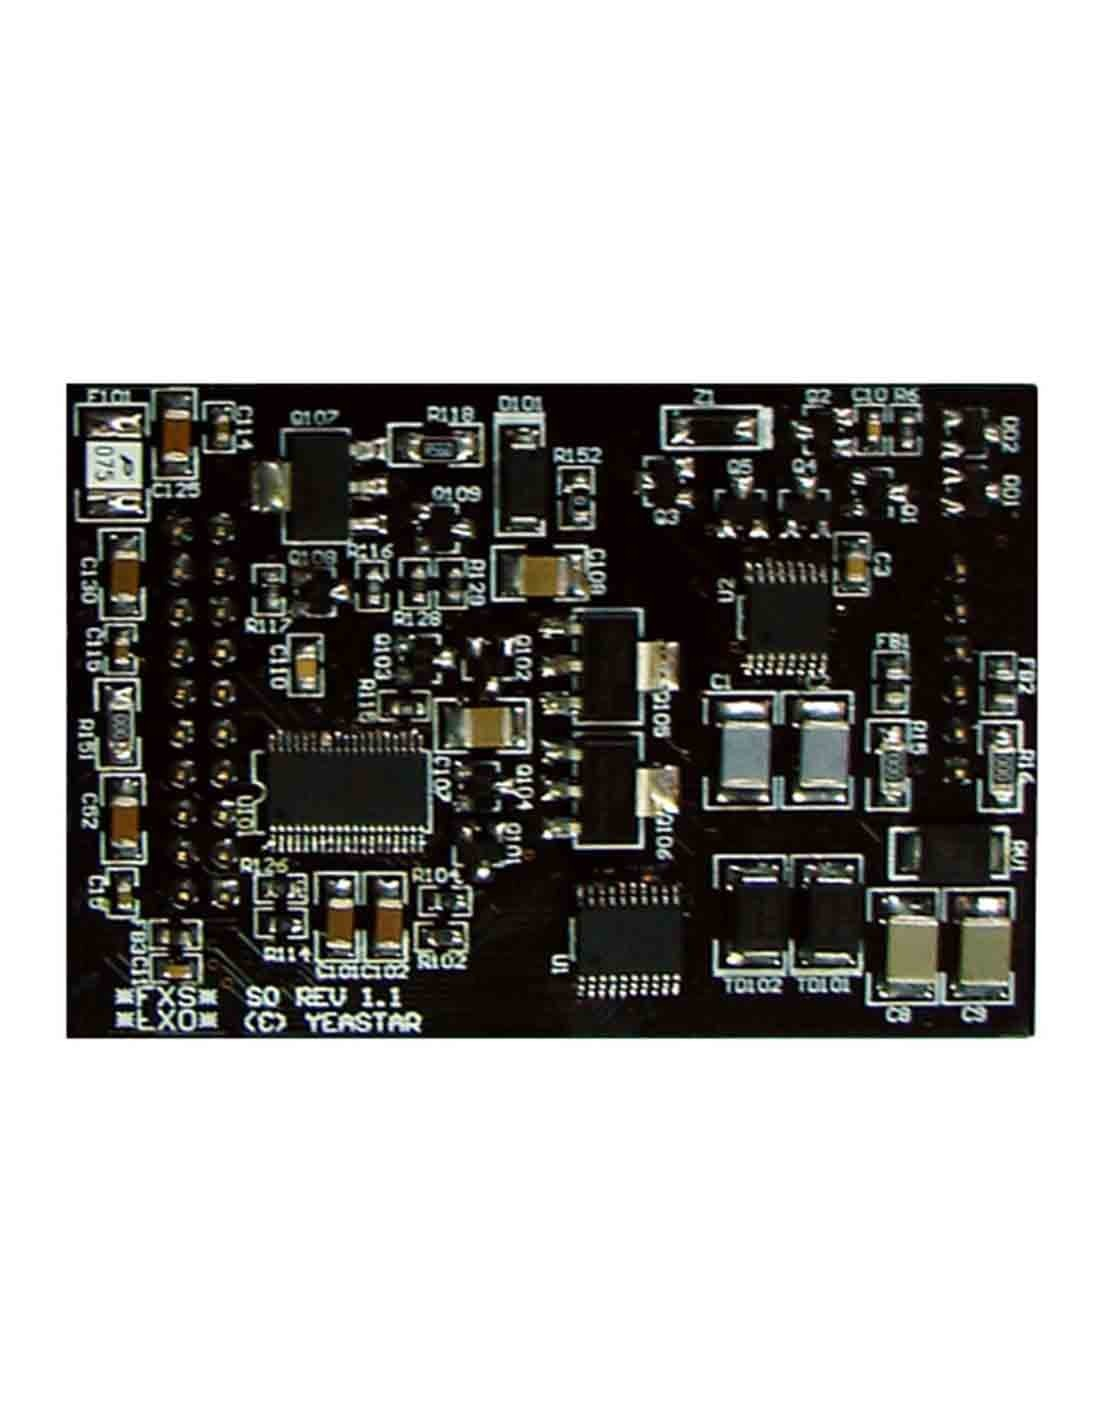 Yeastar SO 1-FXS/1-FXO Module at an affordable Price in Dubai Online Store